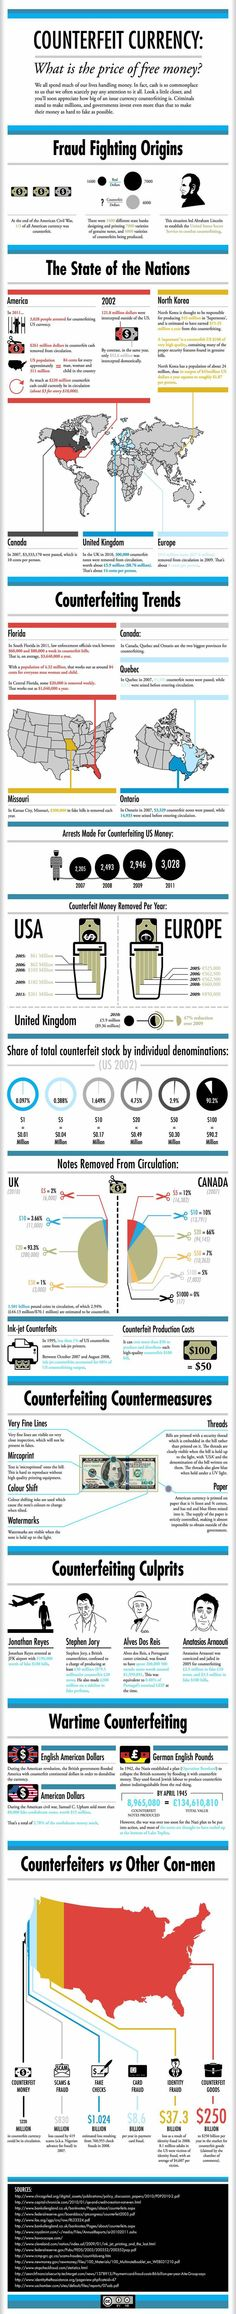 INFOGRAPHIC: Counterfeiting By The Numbers